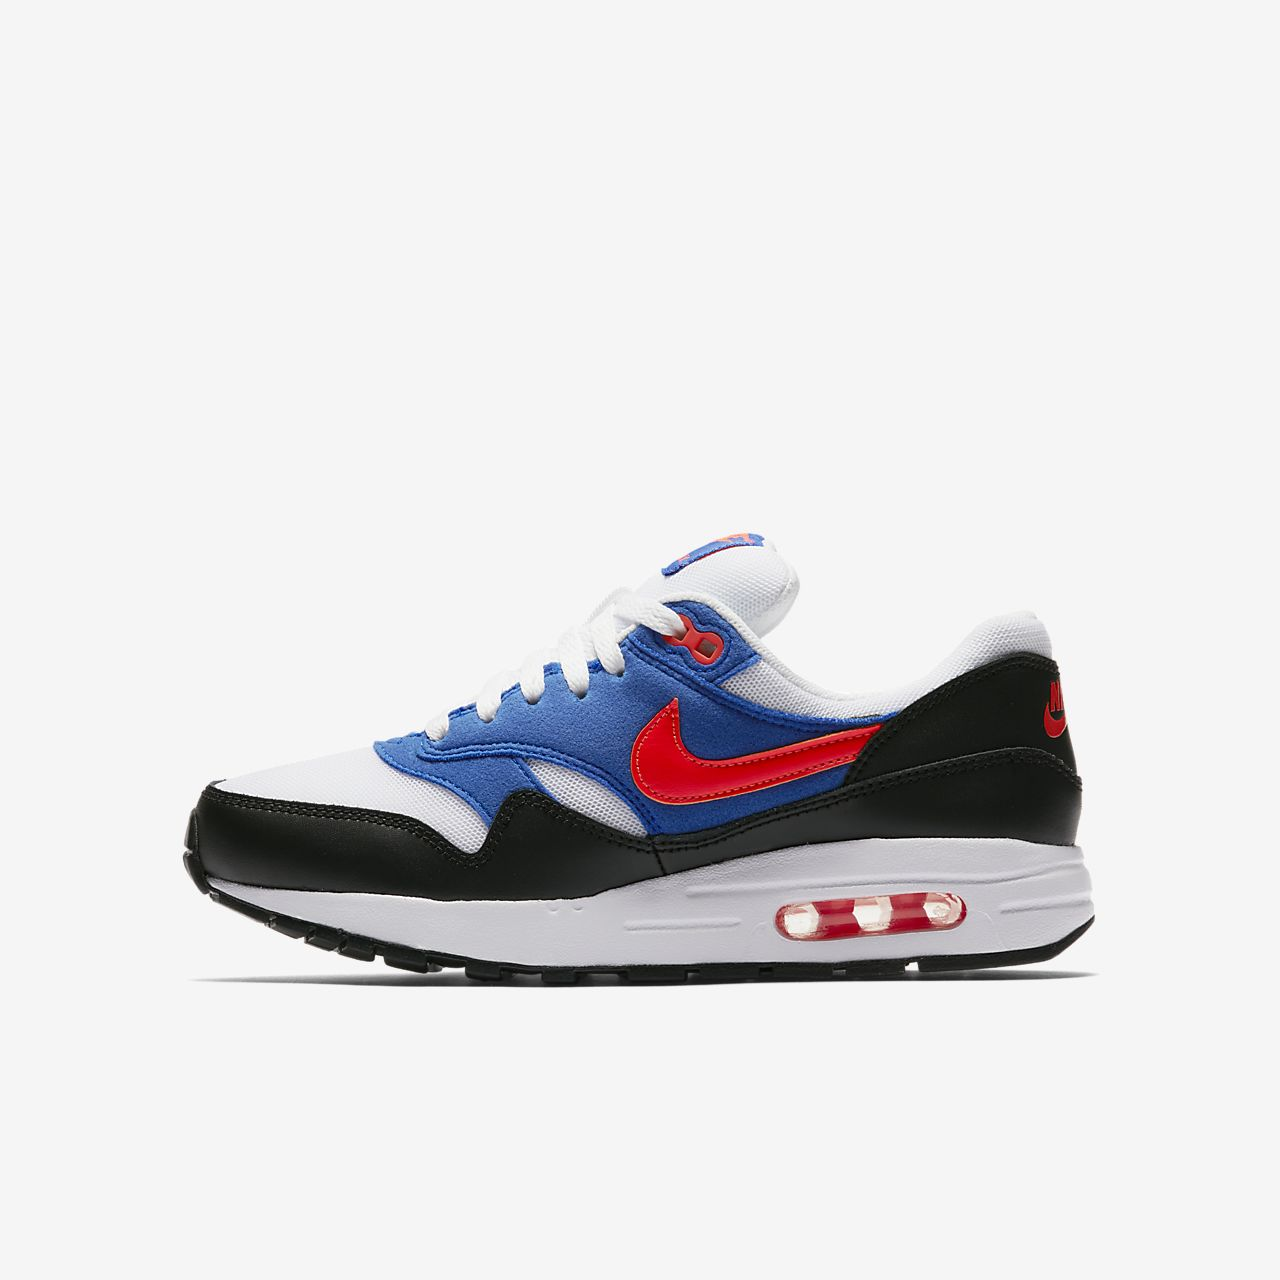 buy popular b586e 085cd air-max-1-schuh-fur-altere-8MWwRf.jpg